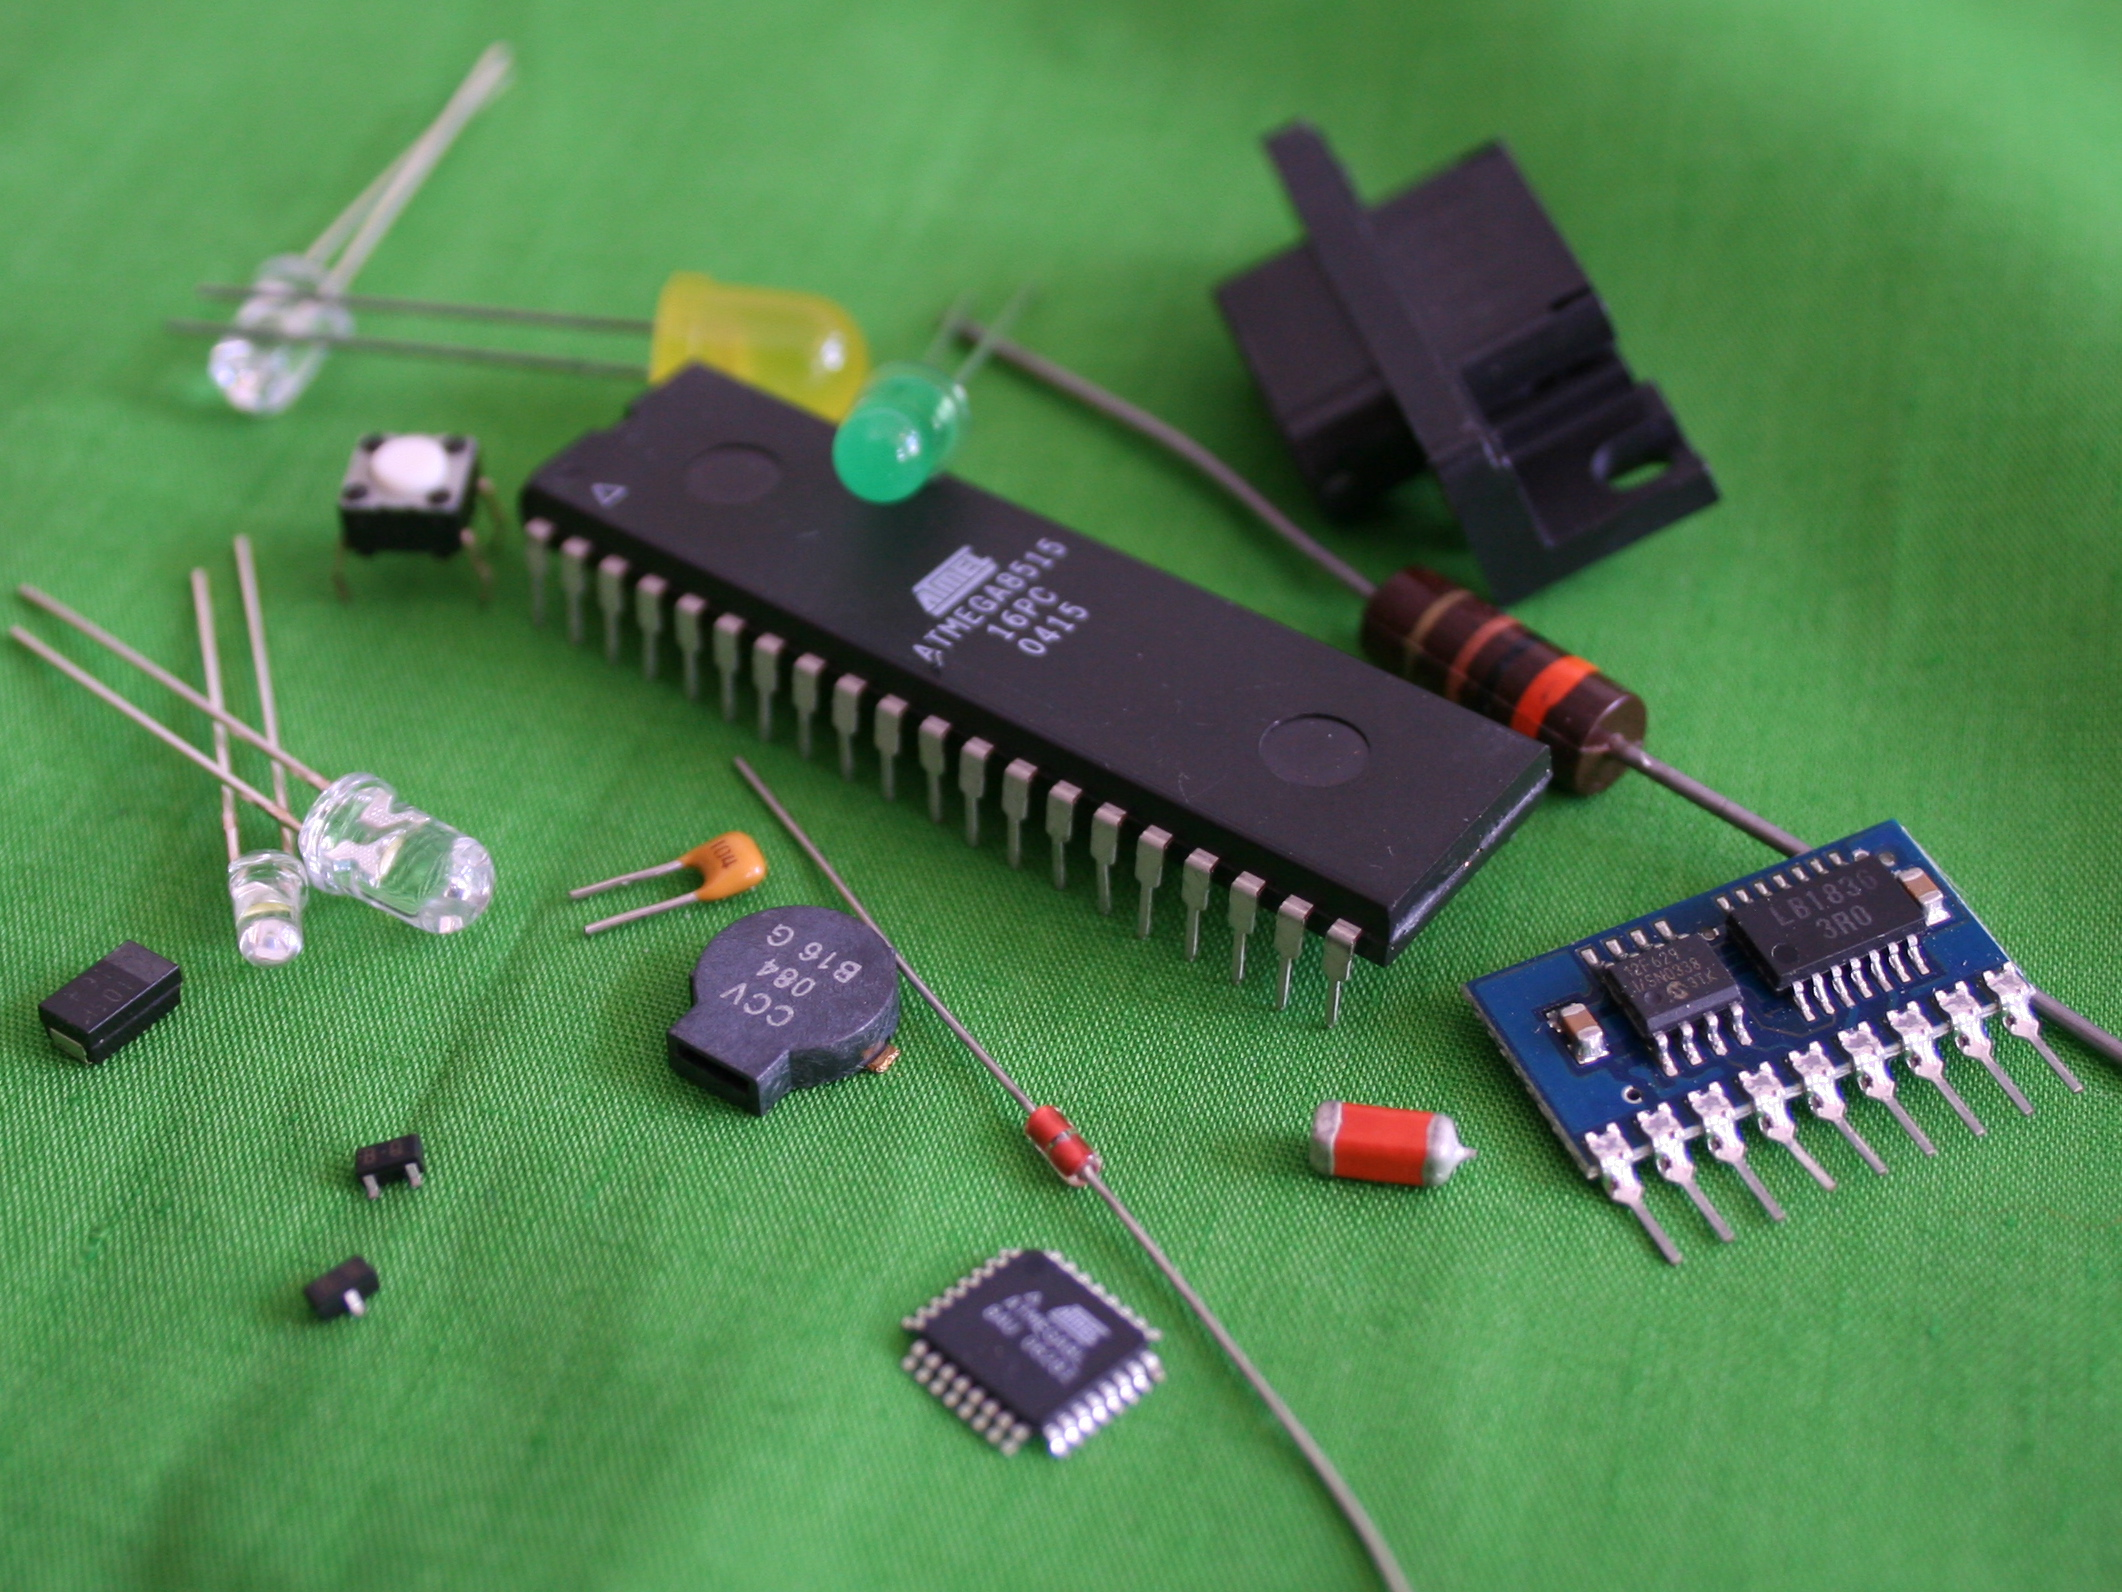 6 tips for choosing PCB components